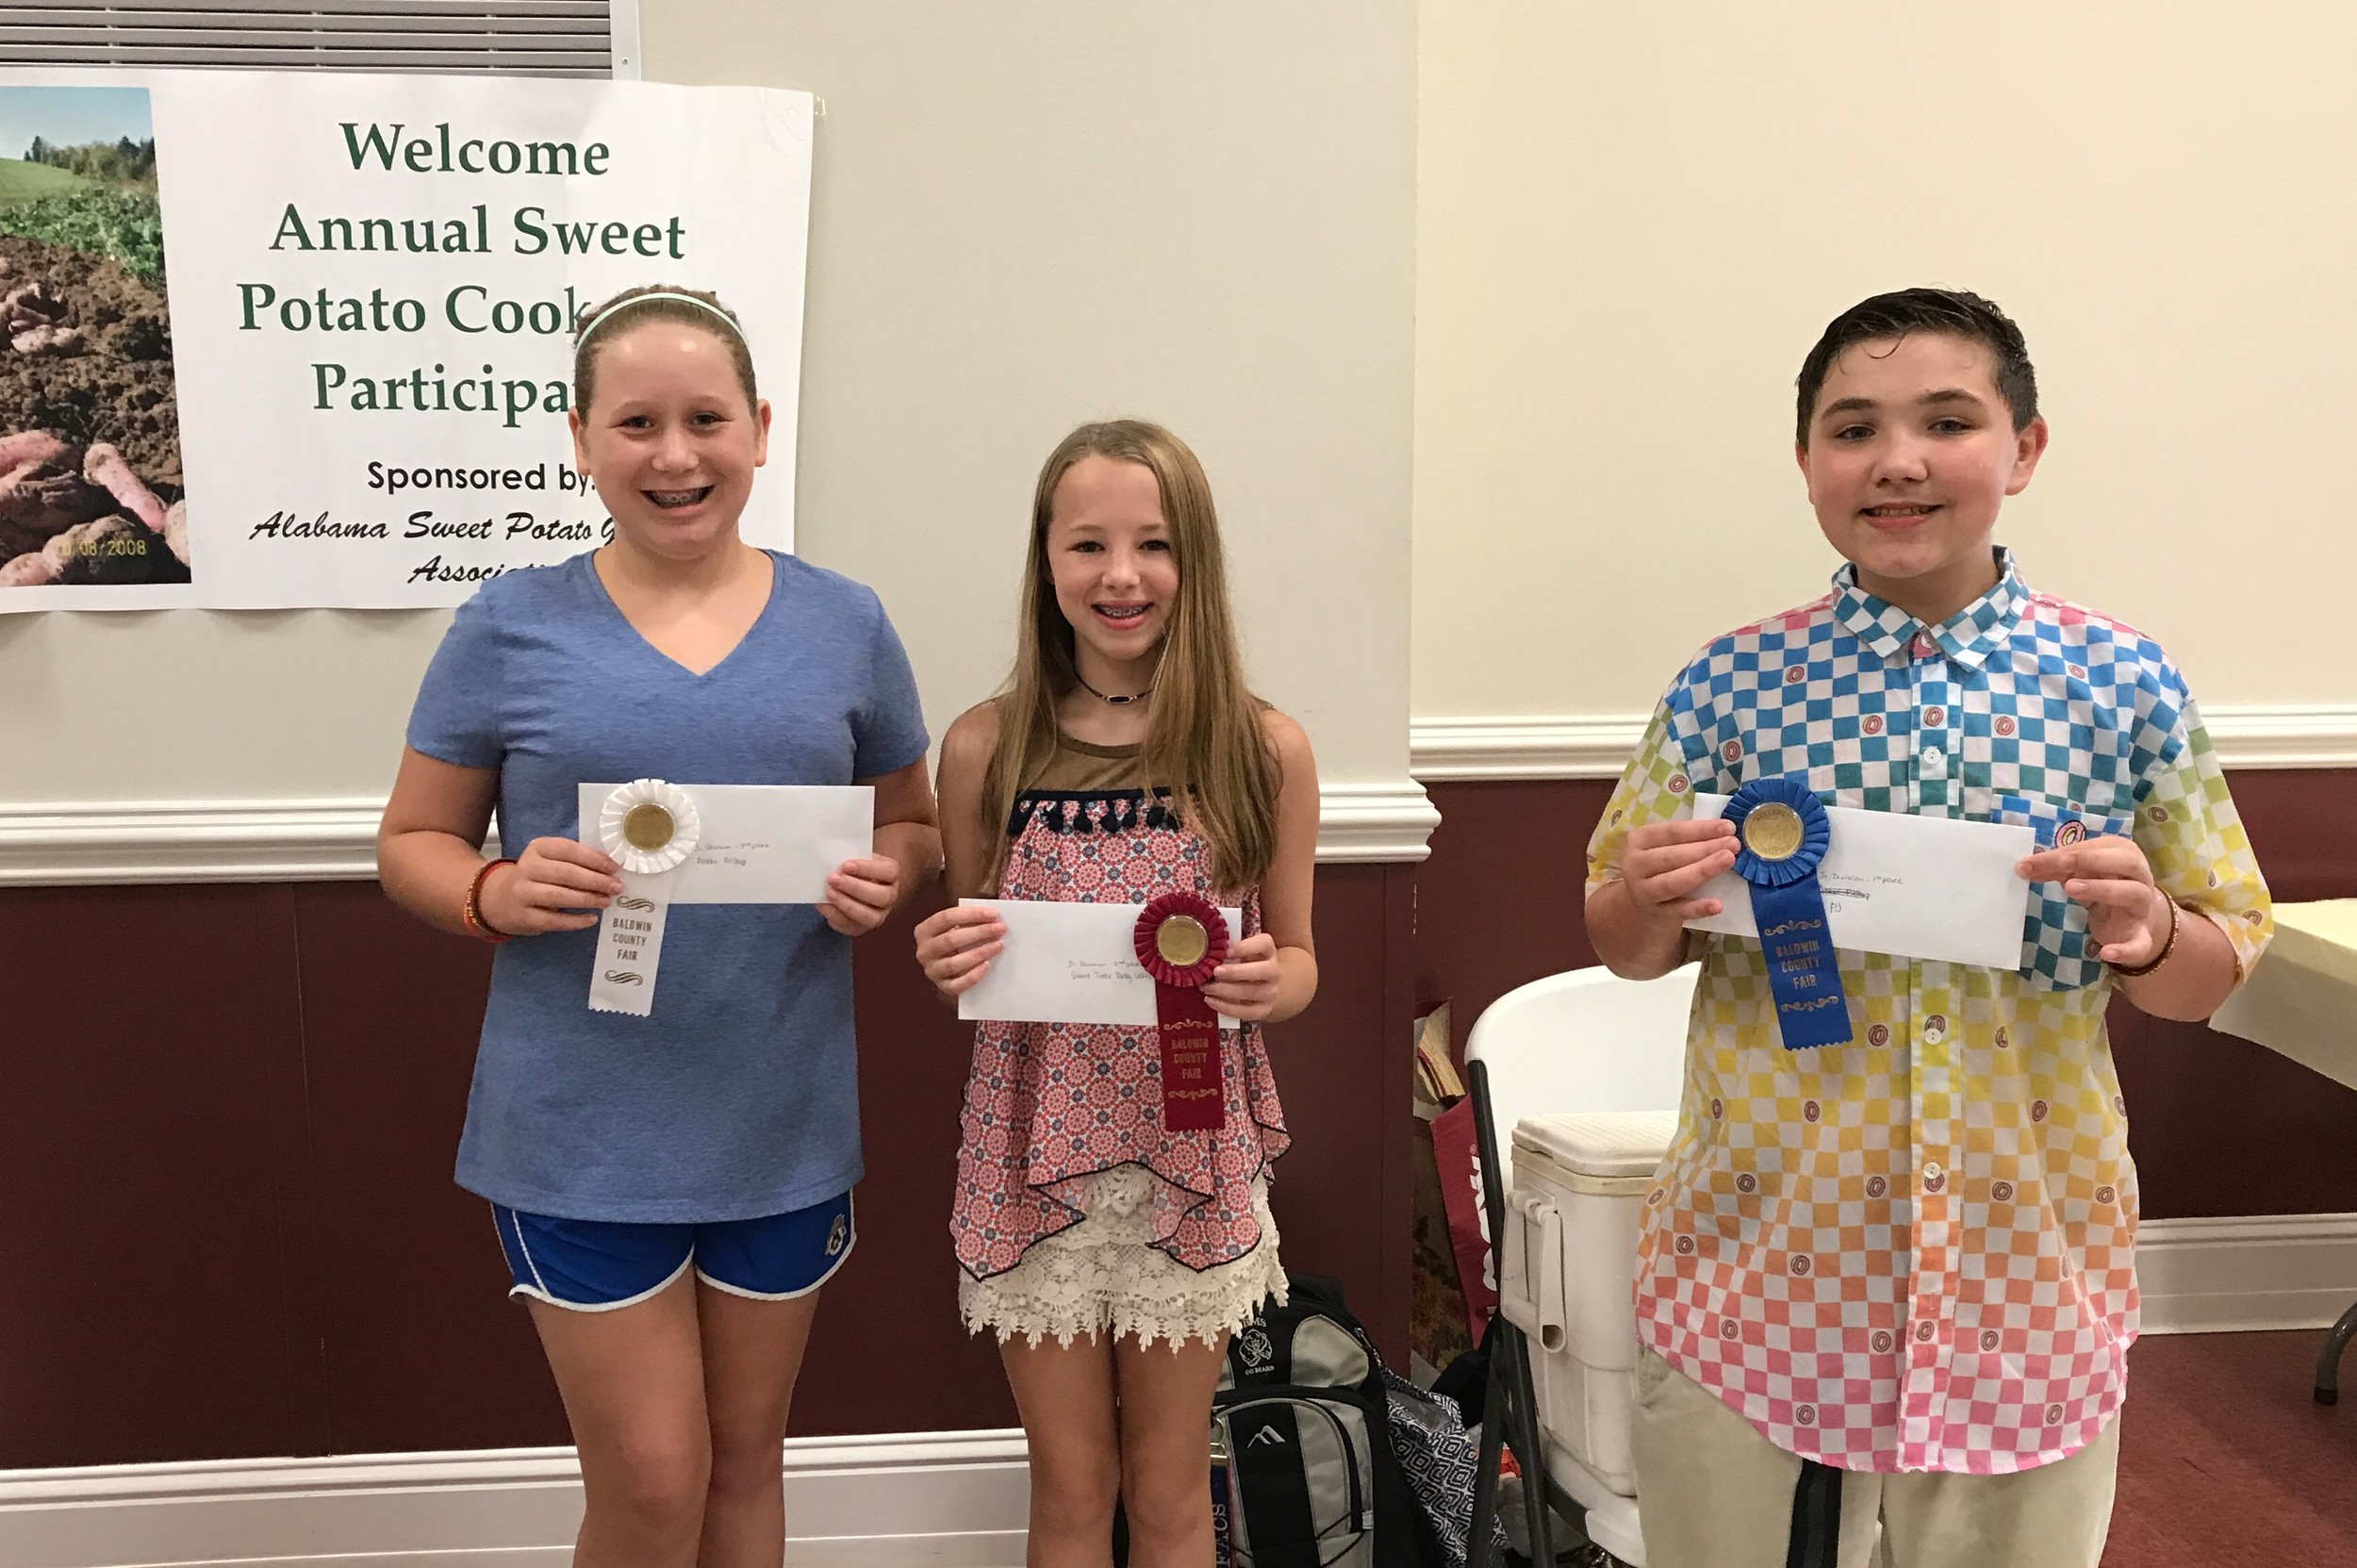 Junior Division Winners in the Sweet Potato Recipe Contest are (l to r) 3rd place, Abbie Bishop; 2nd place, Georgia Paradise; and 1st place, PJ Dananer.